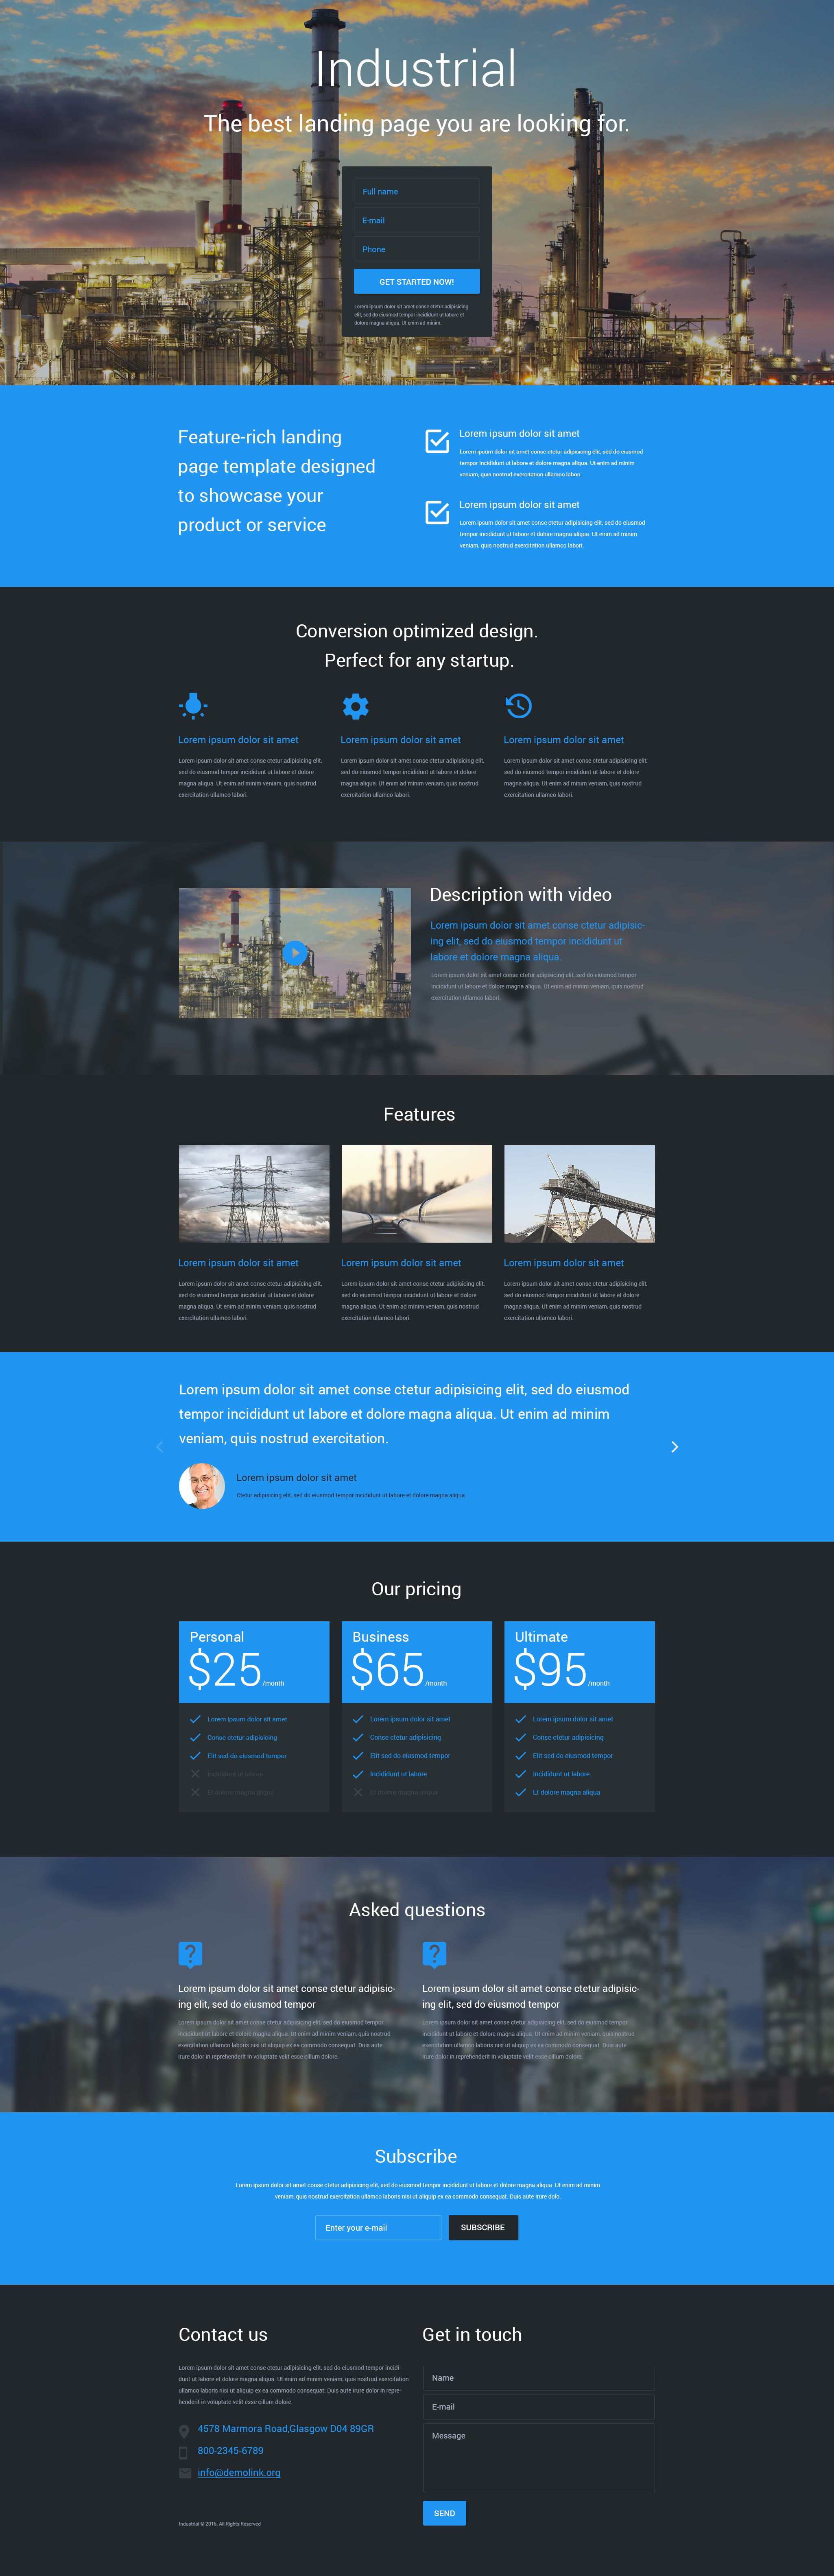 The Industrial Manufacturing Landing Page Template Design 53746, one of the best Landing Page templates of its kind (industrial, most popular), also known as industrial manufacturing Landing Page template, industrial Landing Page template, metal Landing Page template, mining company Landing Page template, camp Landing Page template, open-cast Landing Page template, project Landing Page template, projects Landing Page template, services Landing Page template, human Landing Page template, resources Landing Page template, investors Landing Page template, site Landing Page template, walking Landing Page template, excavator Landing Page template, truck and related with industrial manufacturing, industrial, metal, mining company, camp, open-cast, project, projects, services, human, resources, investors, site, walking, excavator, truck, etc.